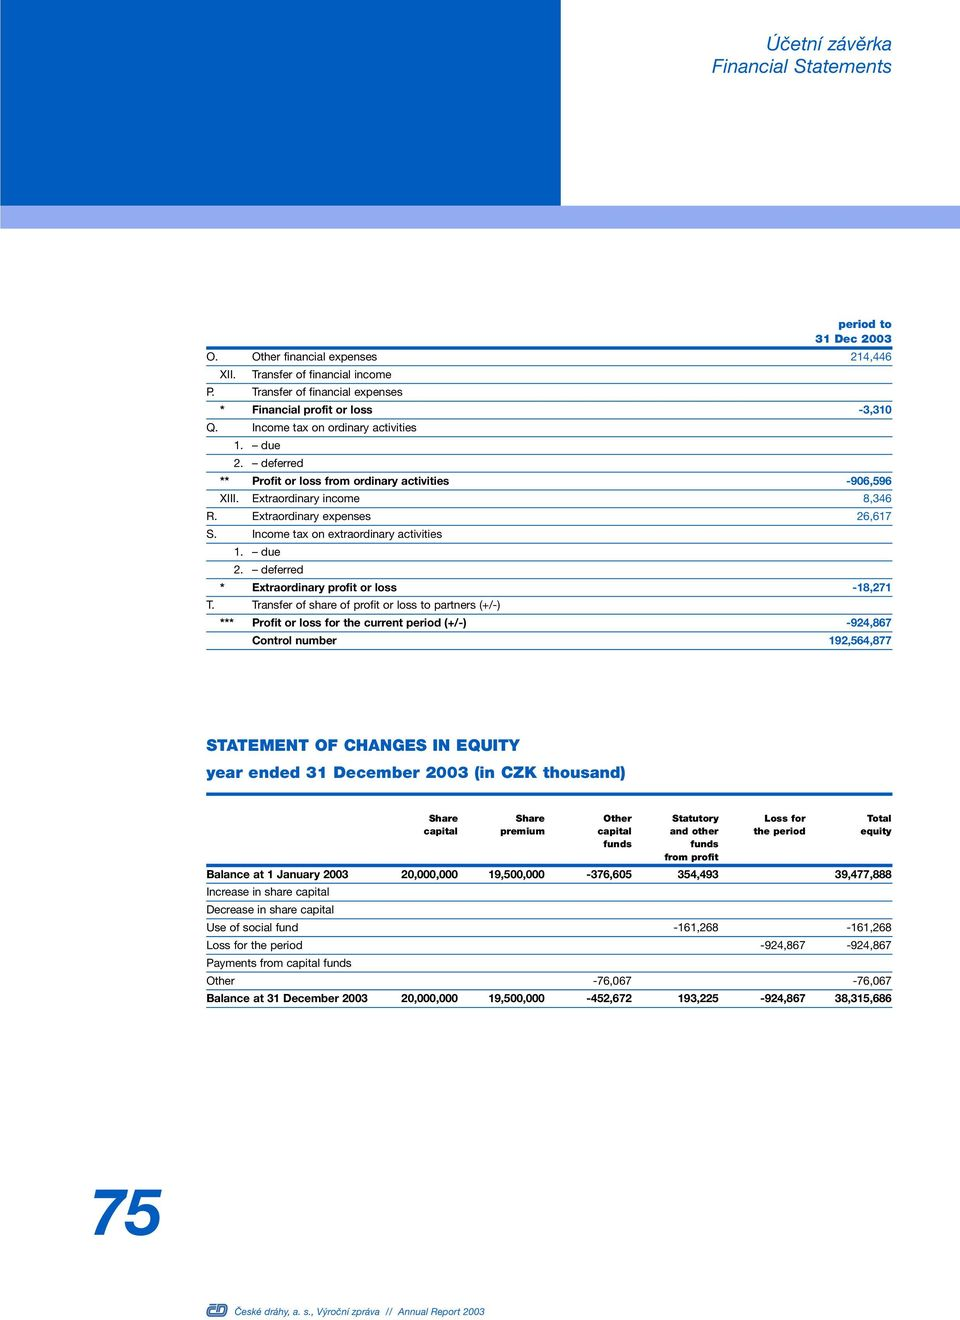 Income tax on extraordinary activities 1. due 2. deferred * Extraordinary profit or loss -18,271 T.